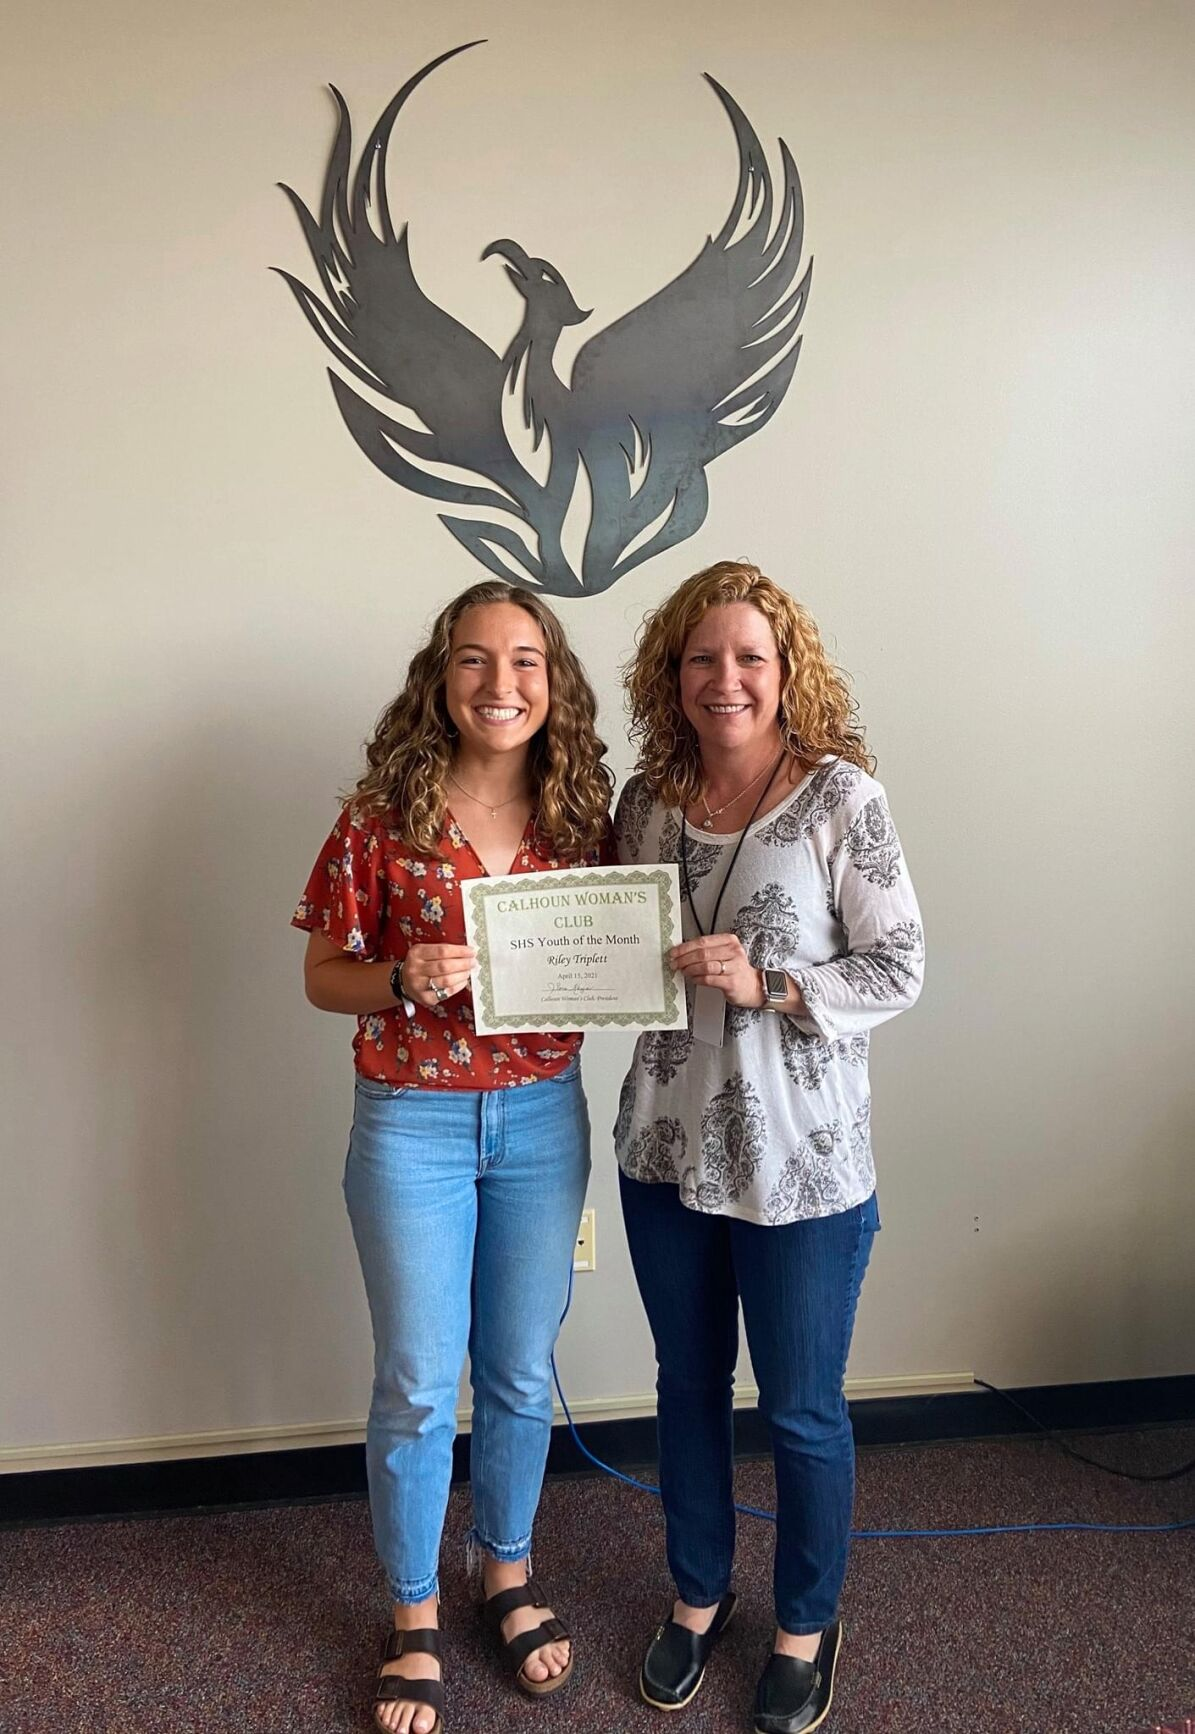 Calhoun Woman's Club April Youths of the Month - SHS